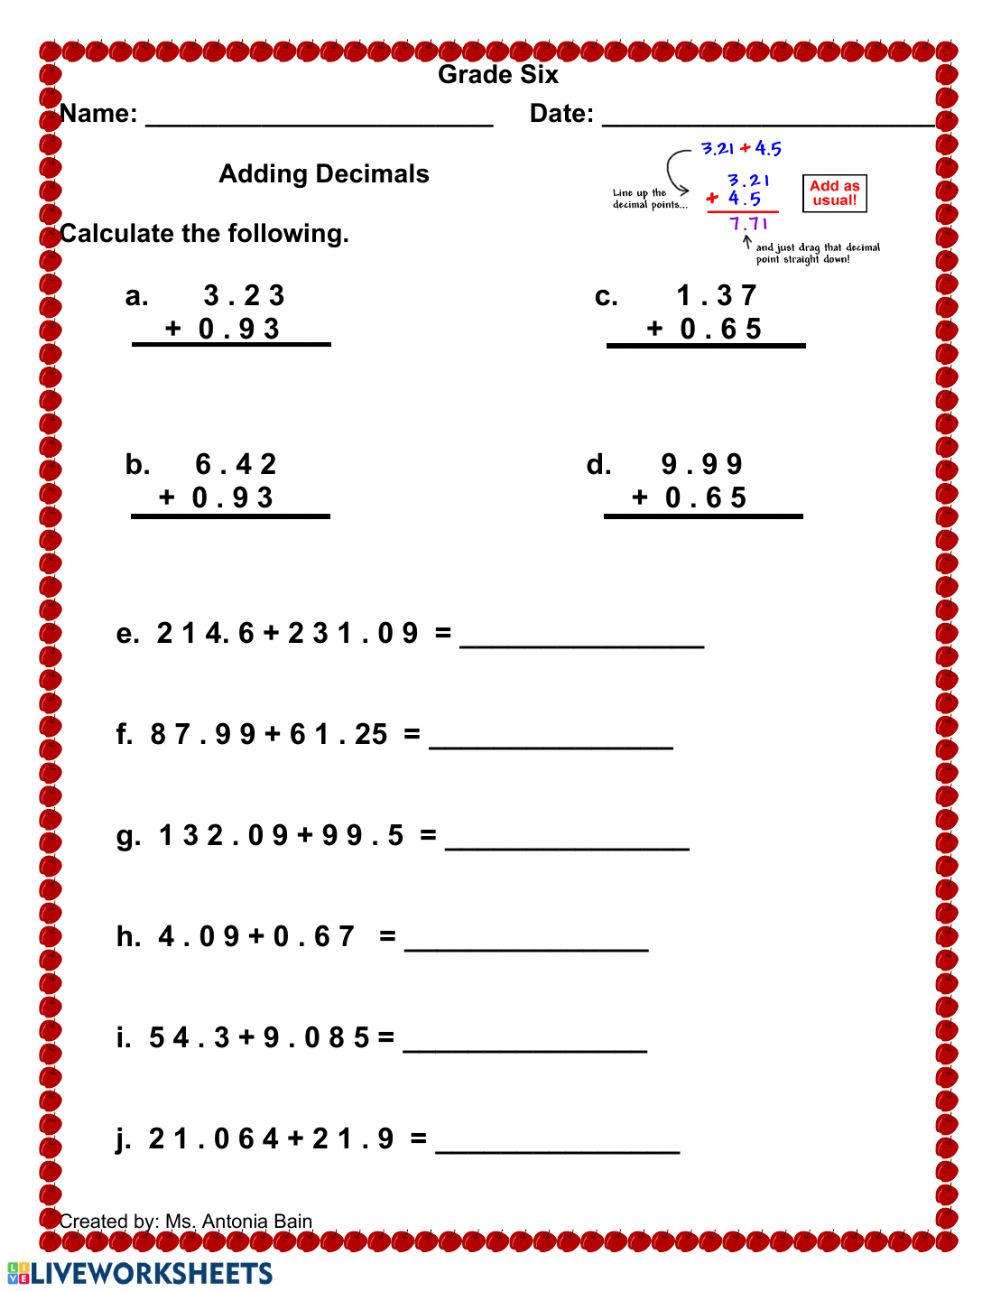 hight resolution of Adding Decimals worksheet